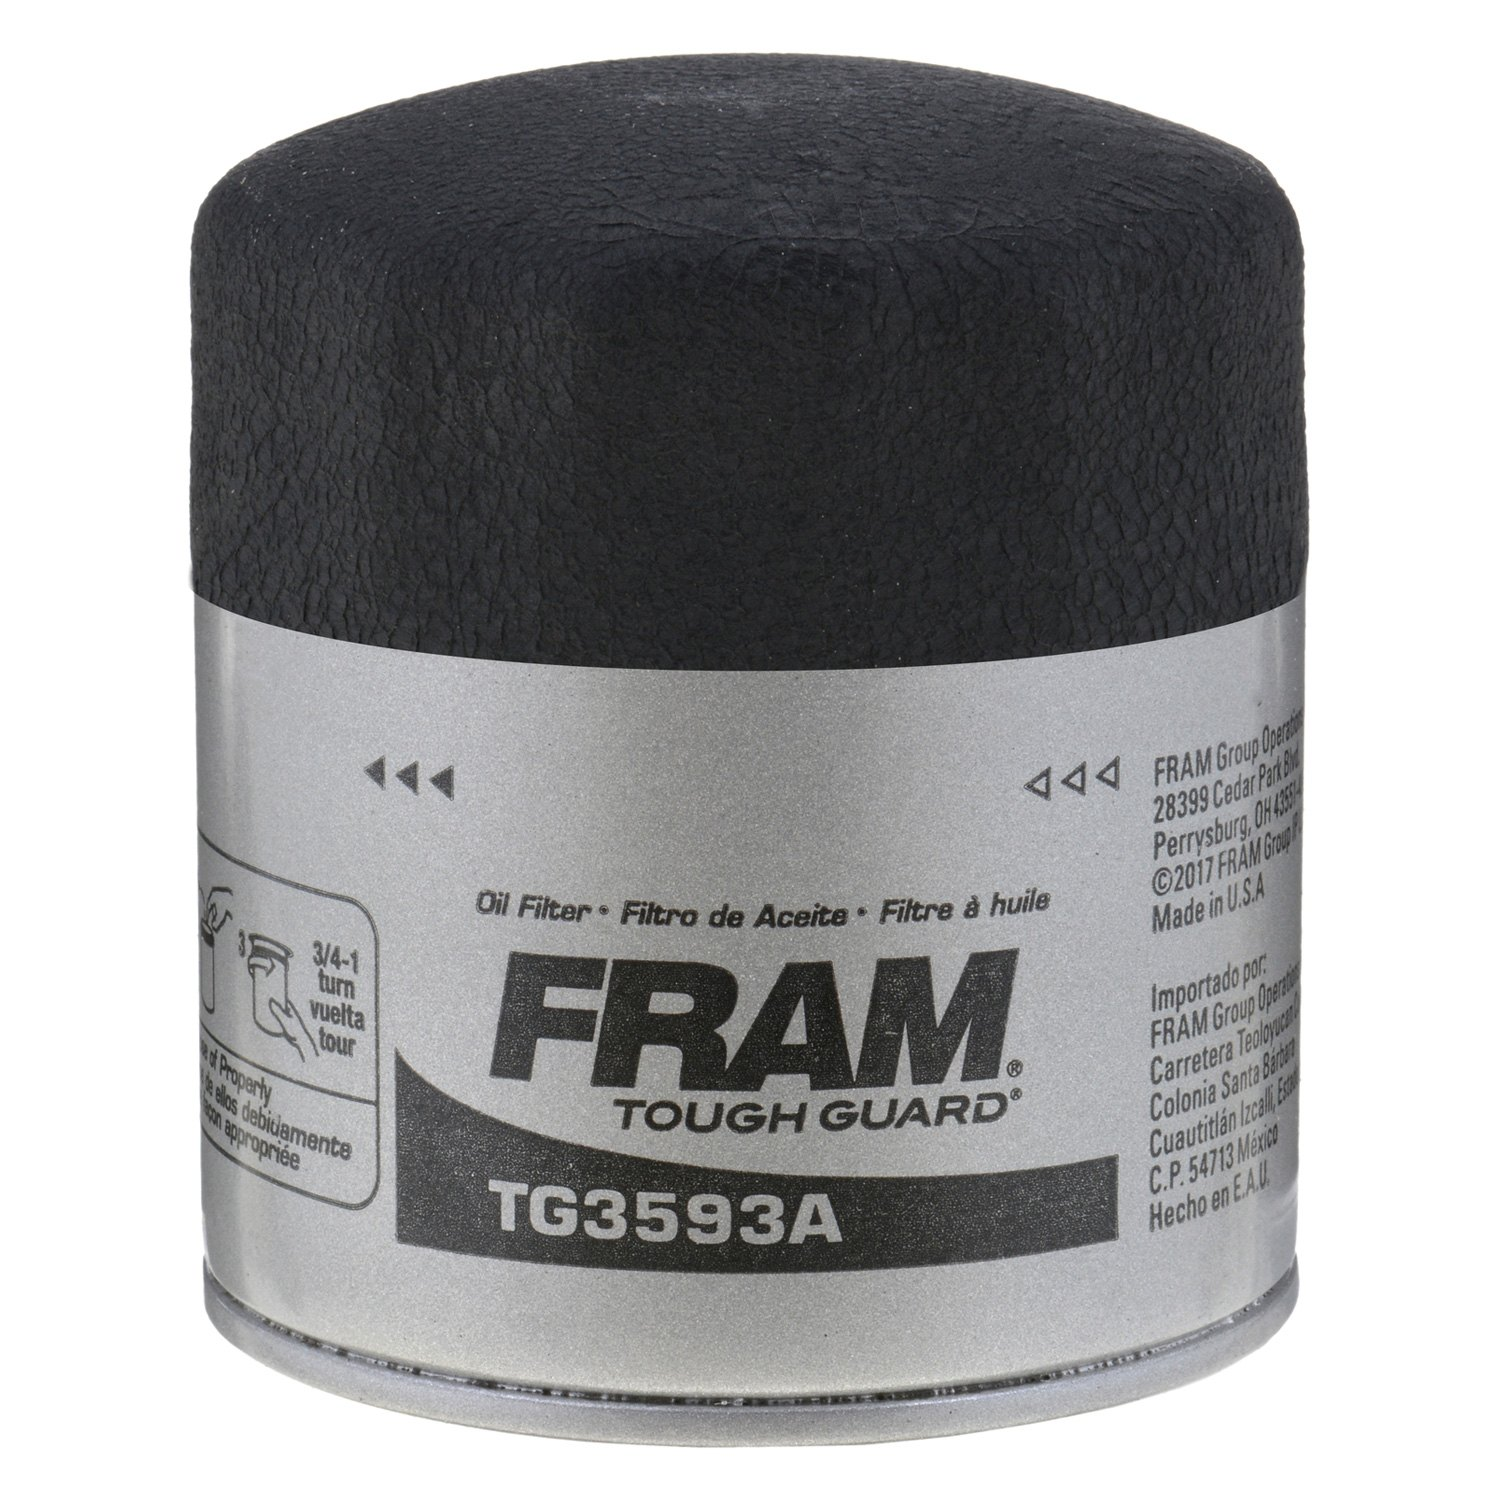 Fram Tg3593a Tough Guard Oil Filter 1990 Acura Integra Engine Free Image For User Manual